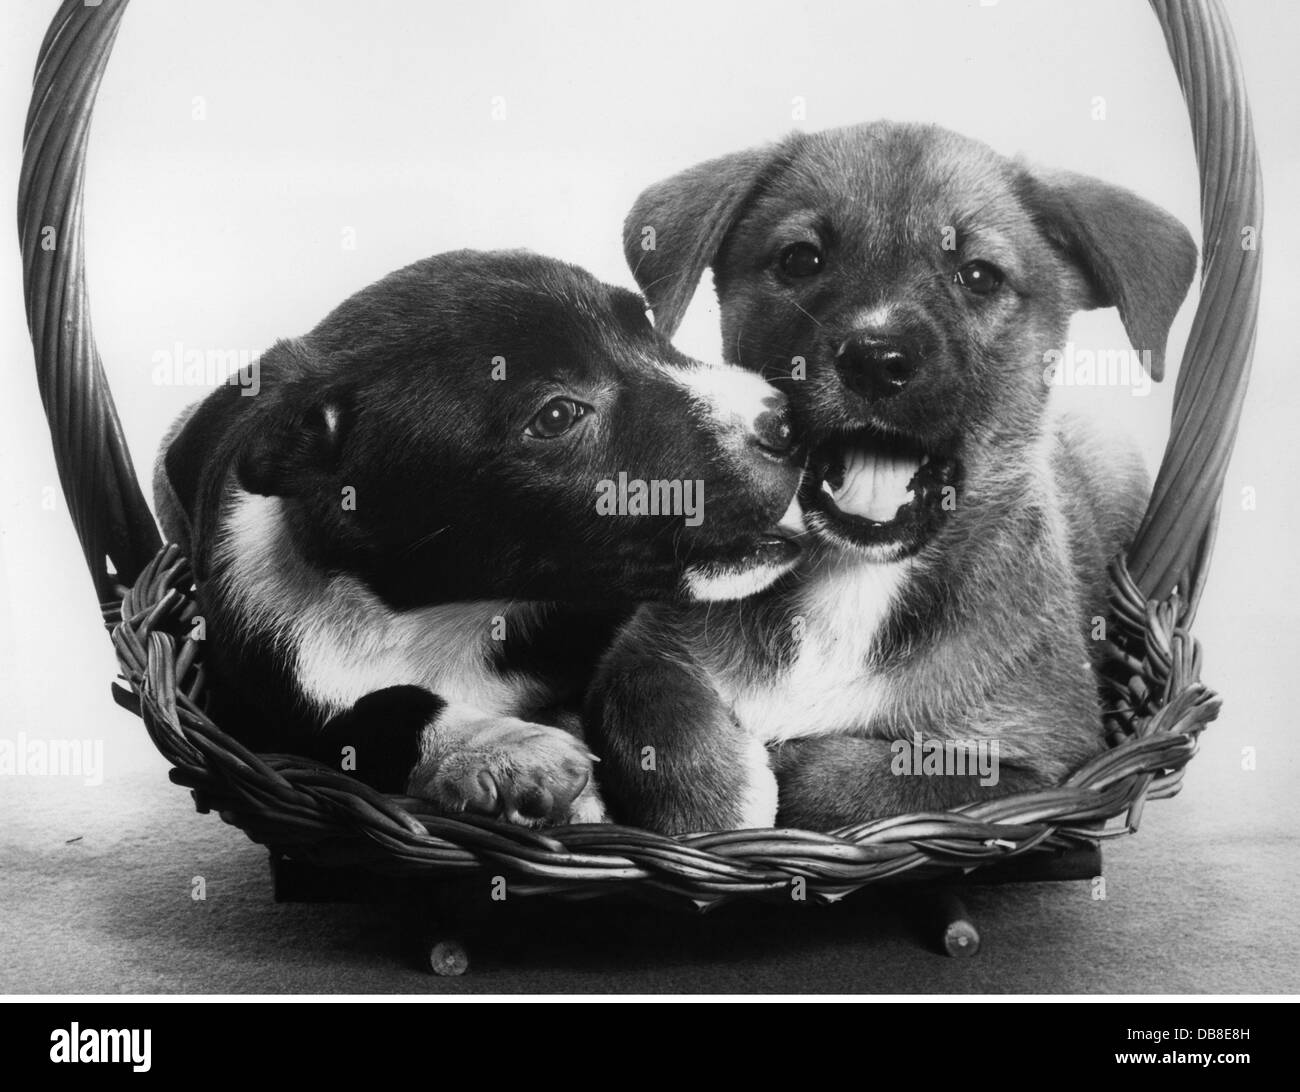 zoology / animals, mammal / mammalian, dog (Canis lupus familiaris), two puppies, 1950s, Additional-Rights-Clearences - Stock Image